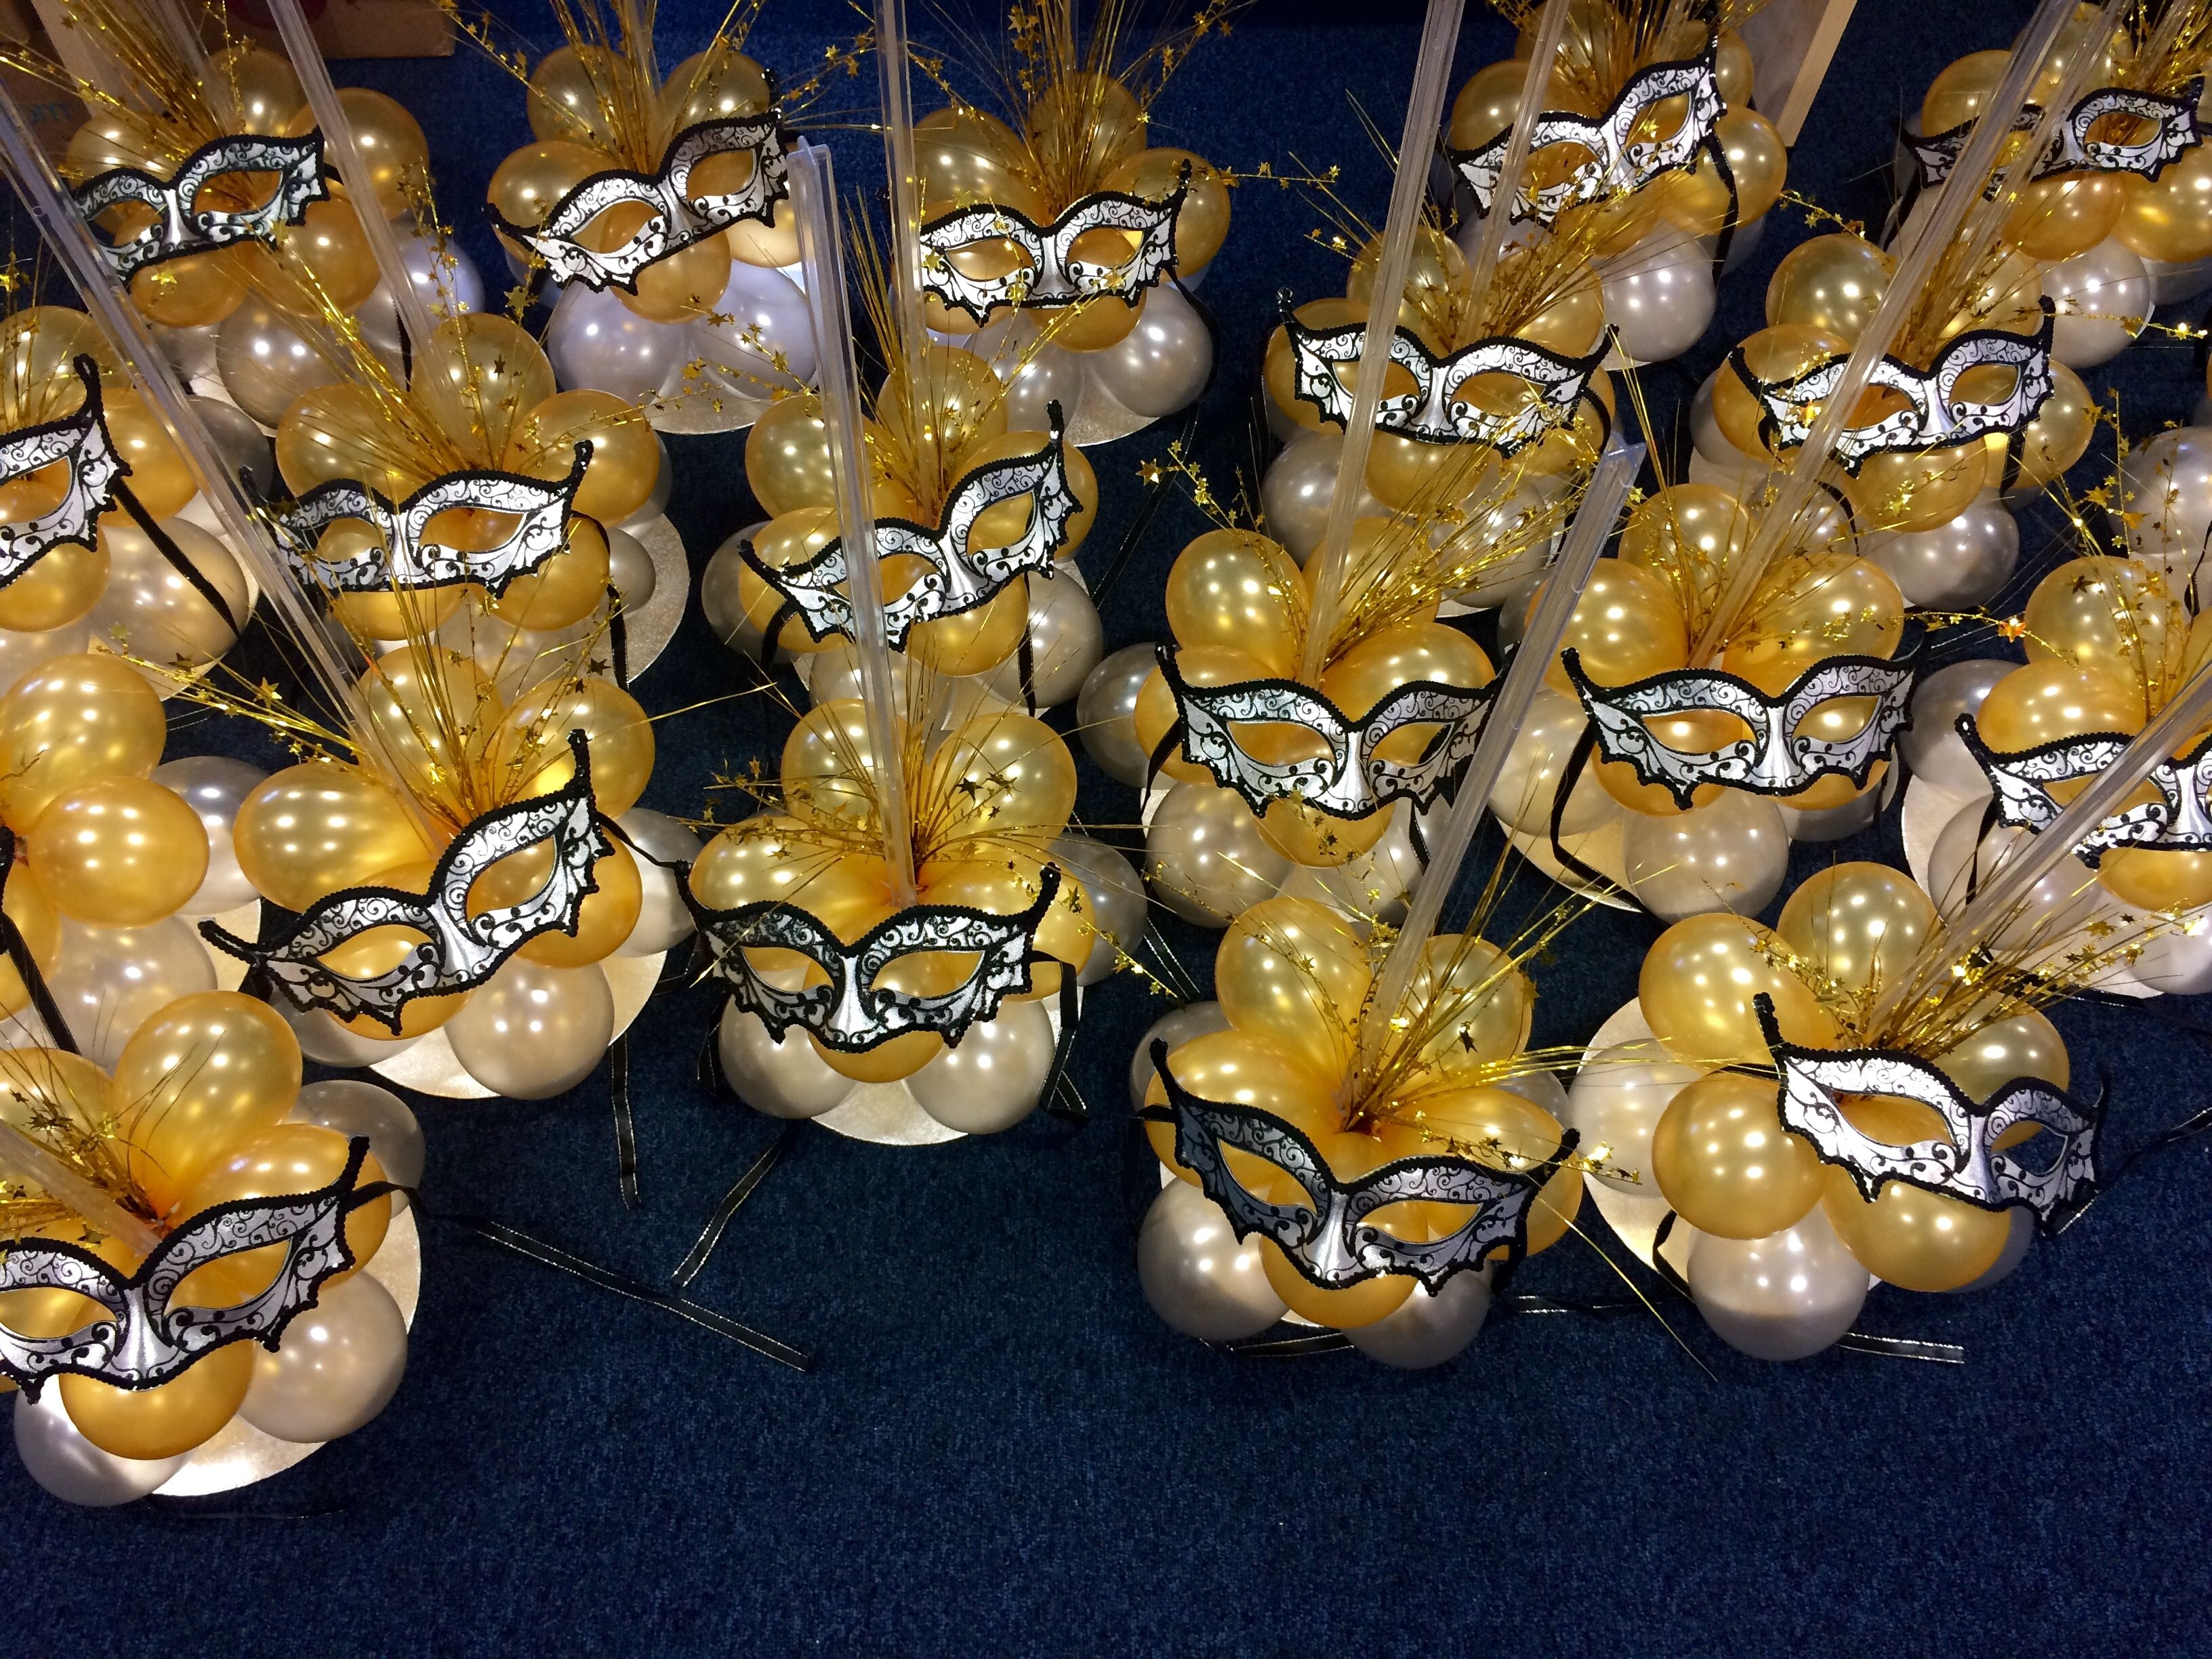 Masquerade Mask Table Decorations Amusing Balloon Bases With A #venetian #mask Theme #masquerade  Balloons Decorating Inspiration